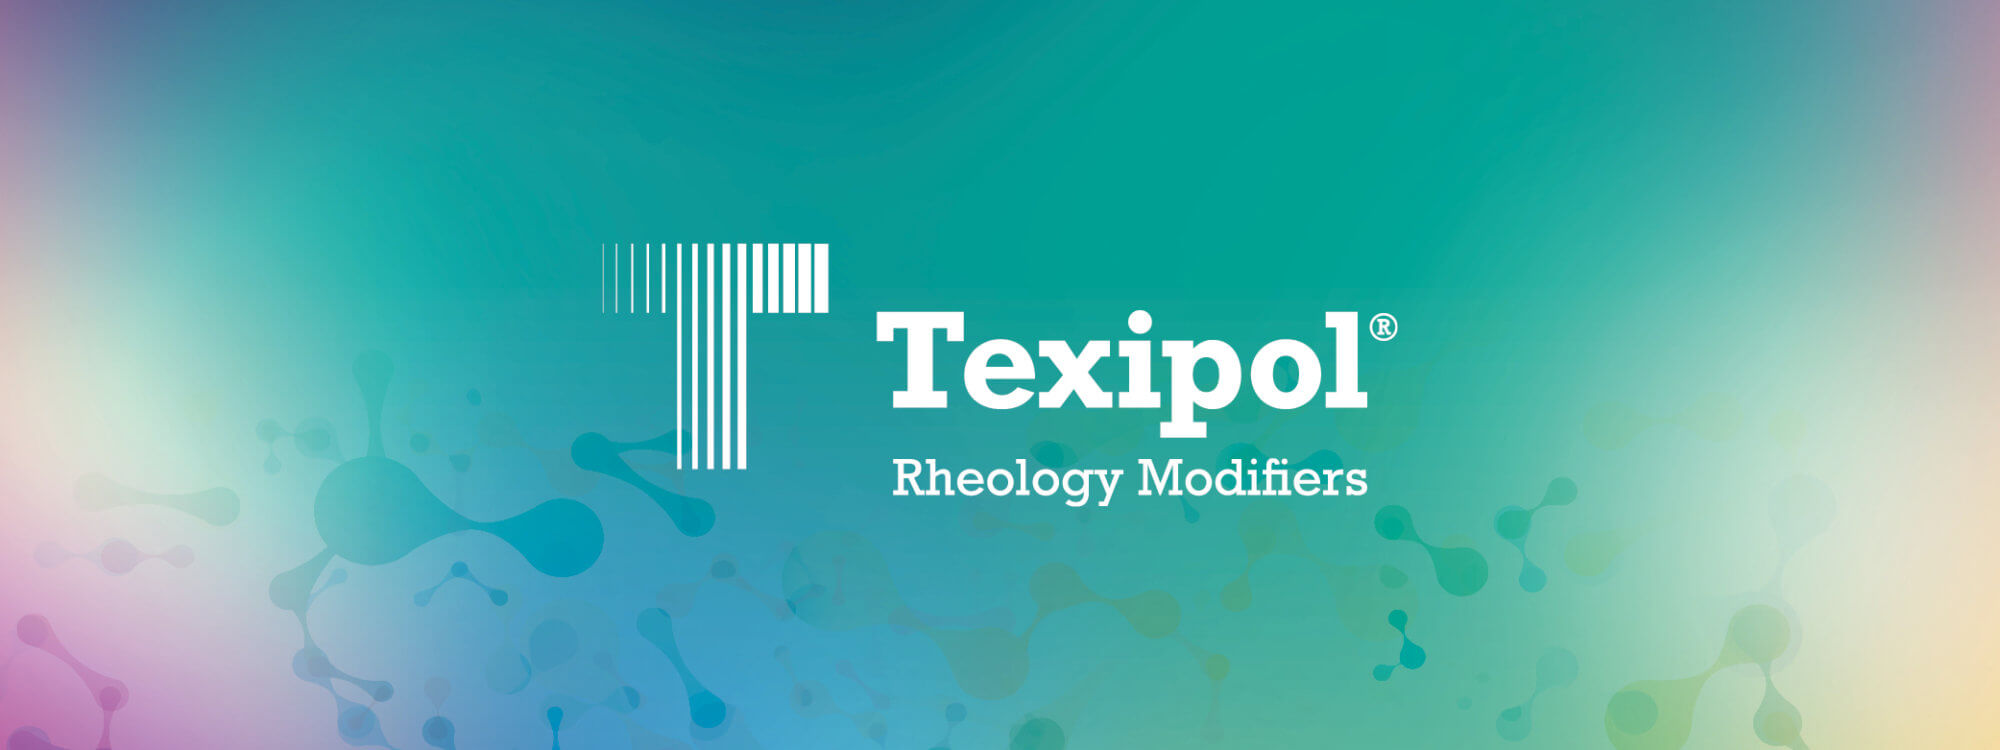 New look for Scott Bader's Texipol<sup>®</sup> rheology modifiers